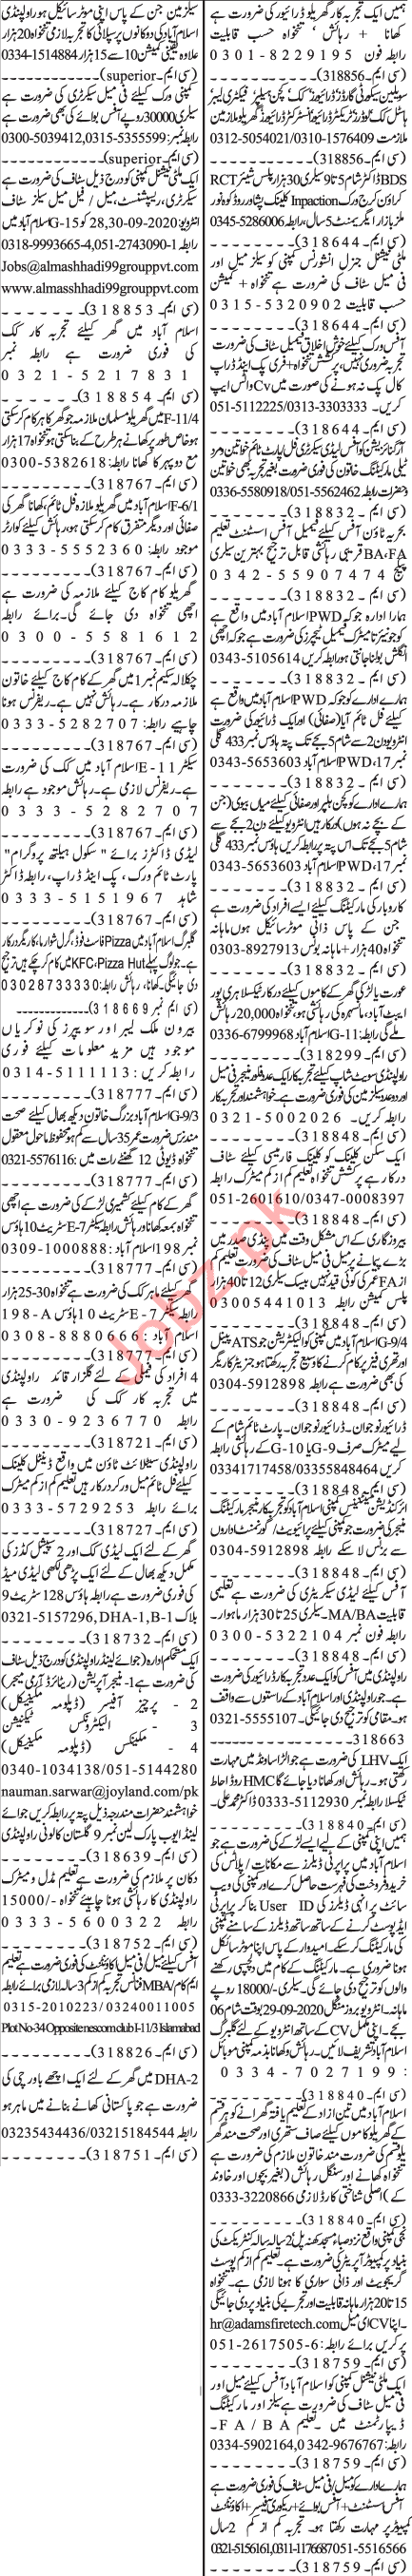 Jang Sunday Classified Ads 27 Sept 2020 for General Staff